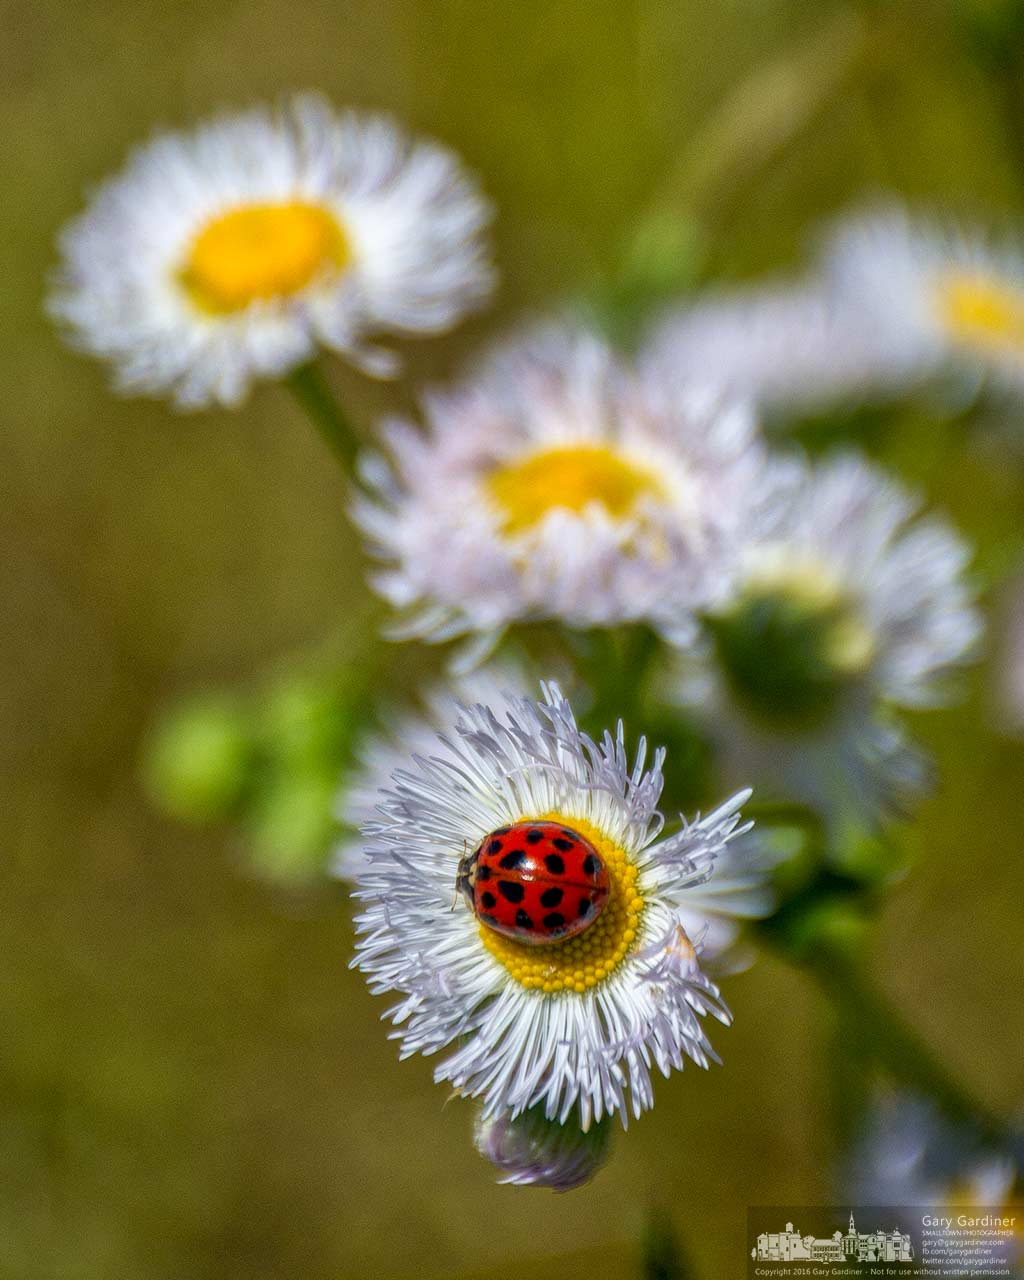 A ladybug lands on a Philadelphia fleabane flower growing in the too wet to plow fields at the Braun Farm. My Final Photo for May 16, 2016.